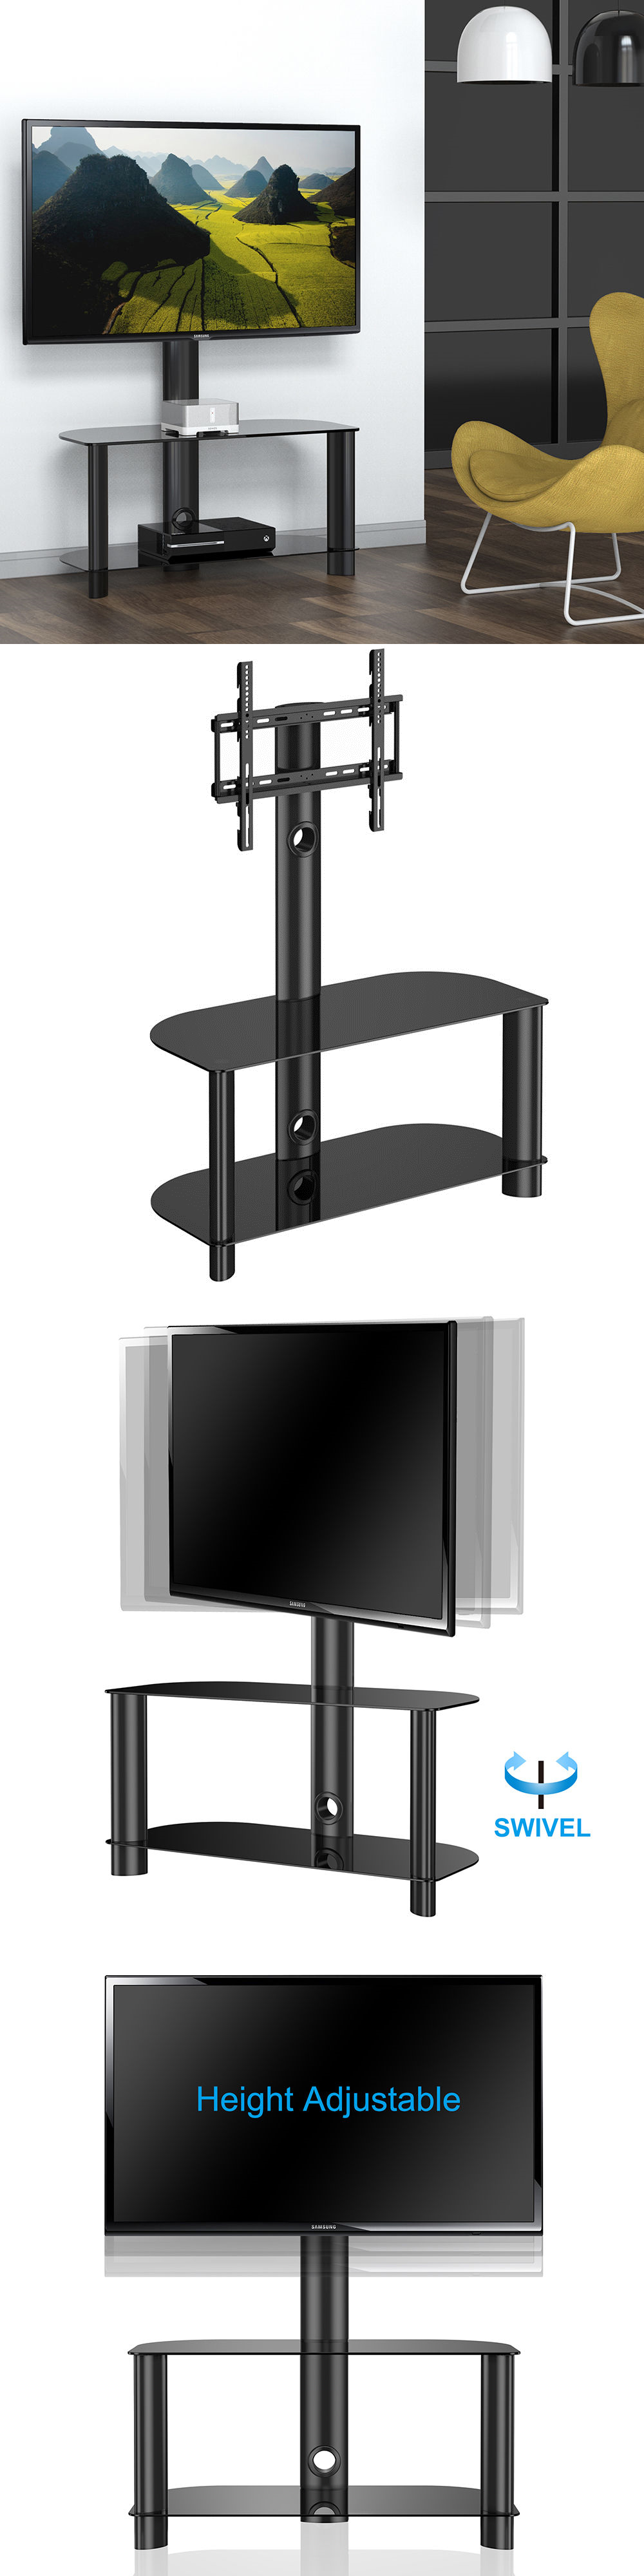 Entertainment Units TV Stands Tv Stand With Swivel Mount